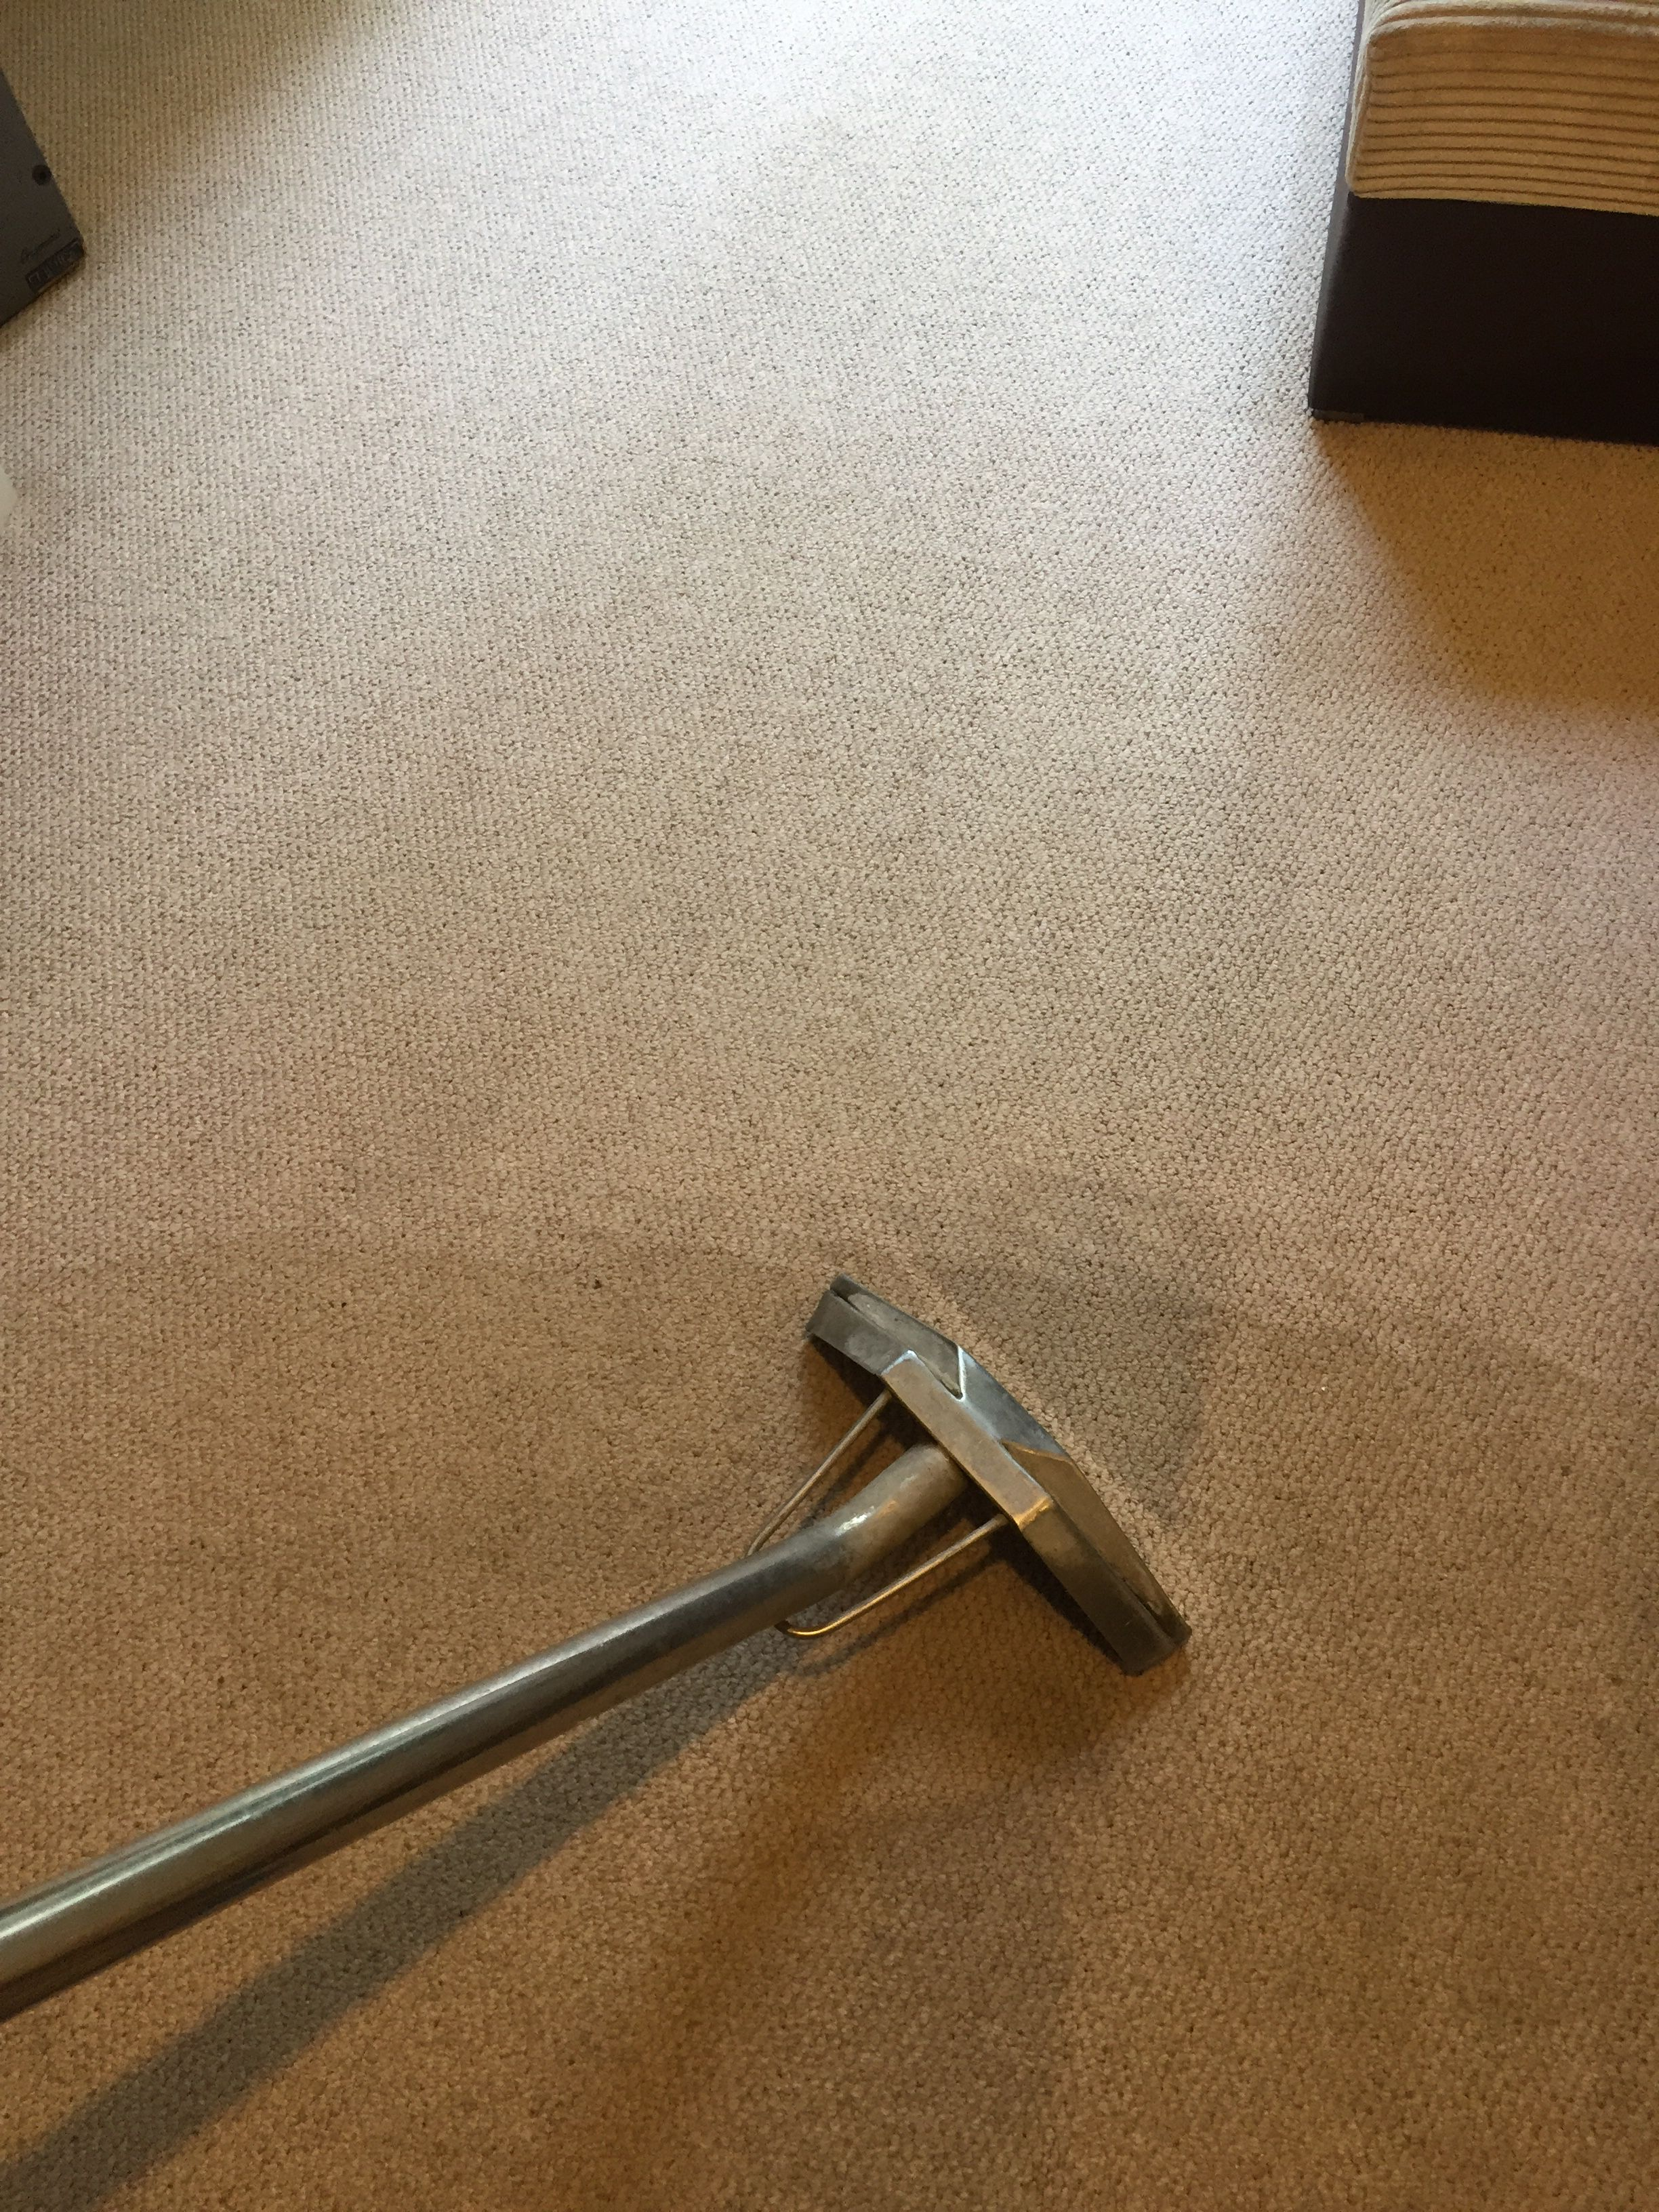 Diamond Cleaning Offers A Professional Carpet Cleaning Service In Brighton And Surroun How To Clean Carpet Professional Carpet Cleaning Carpet Cleaning Service